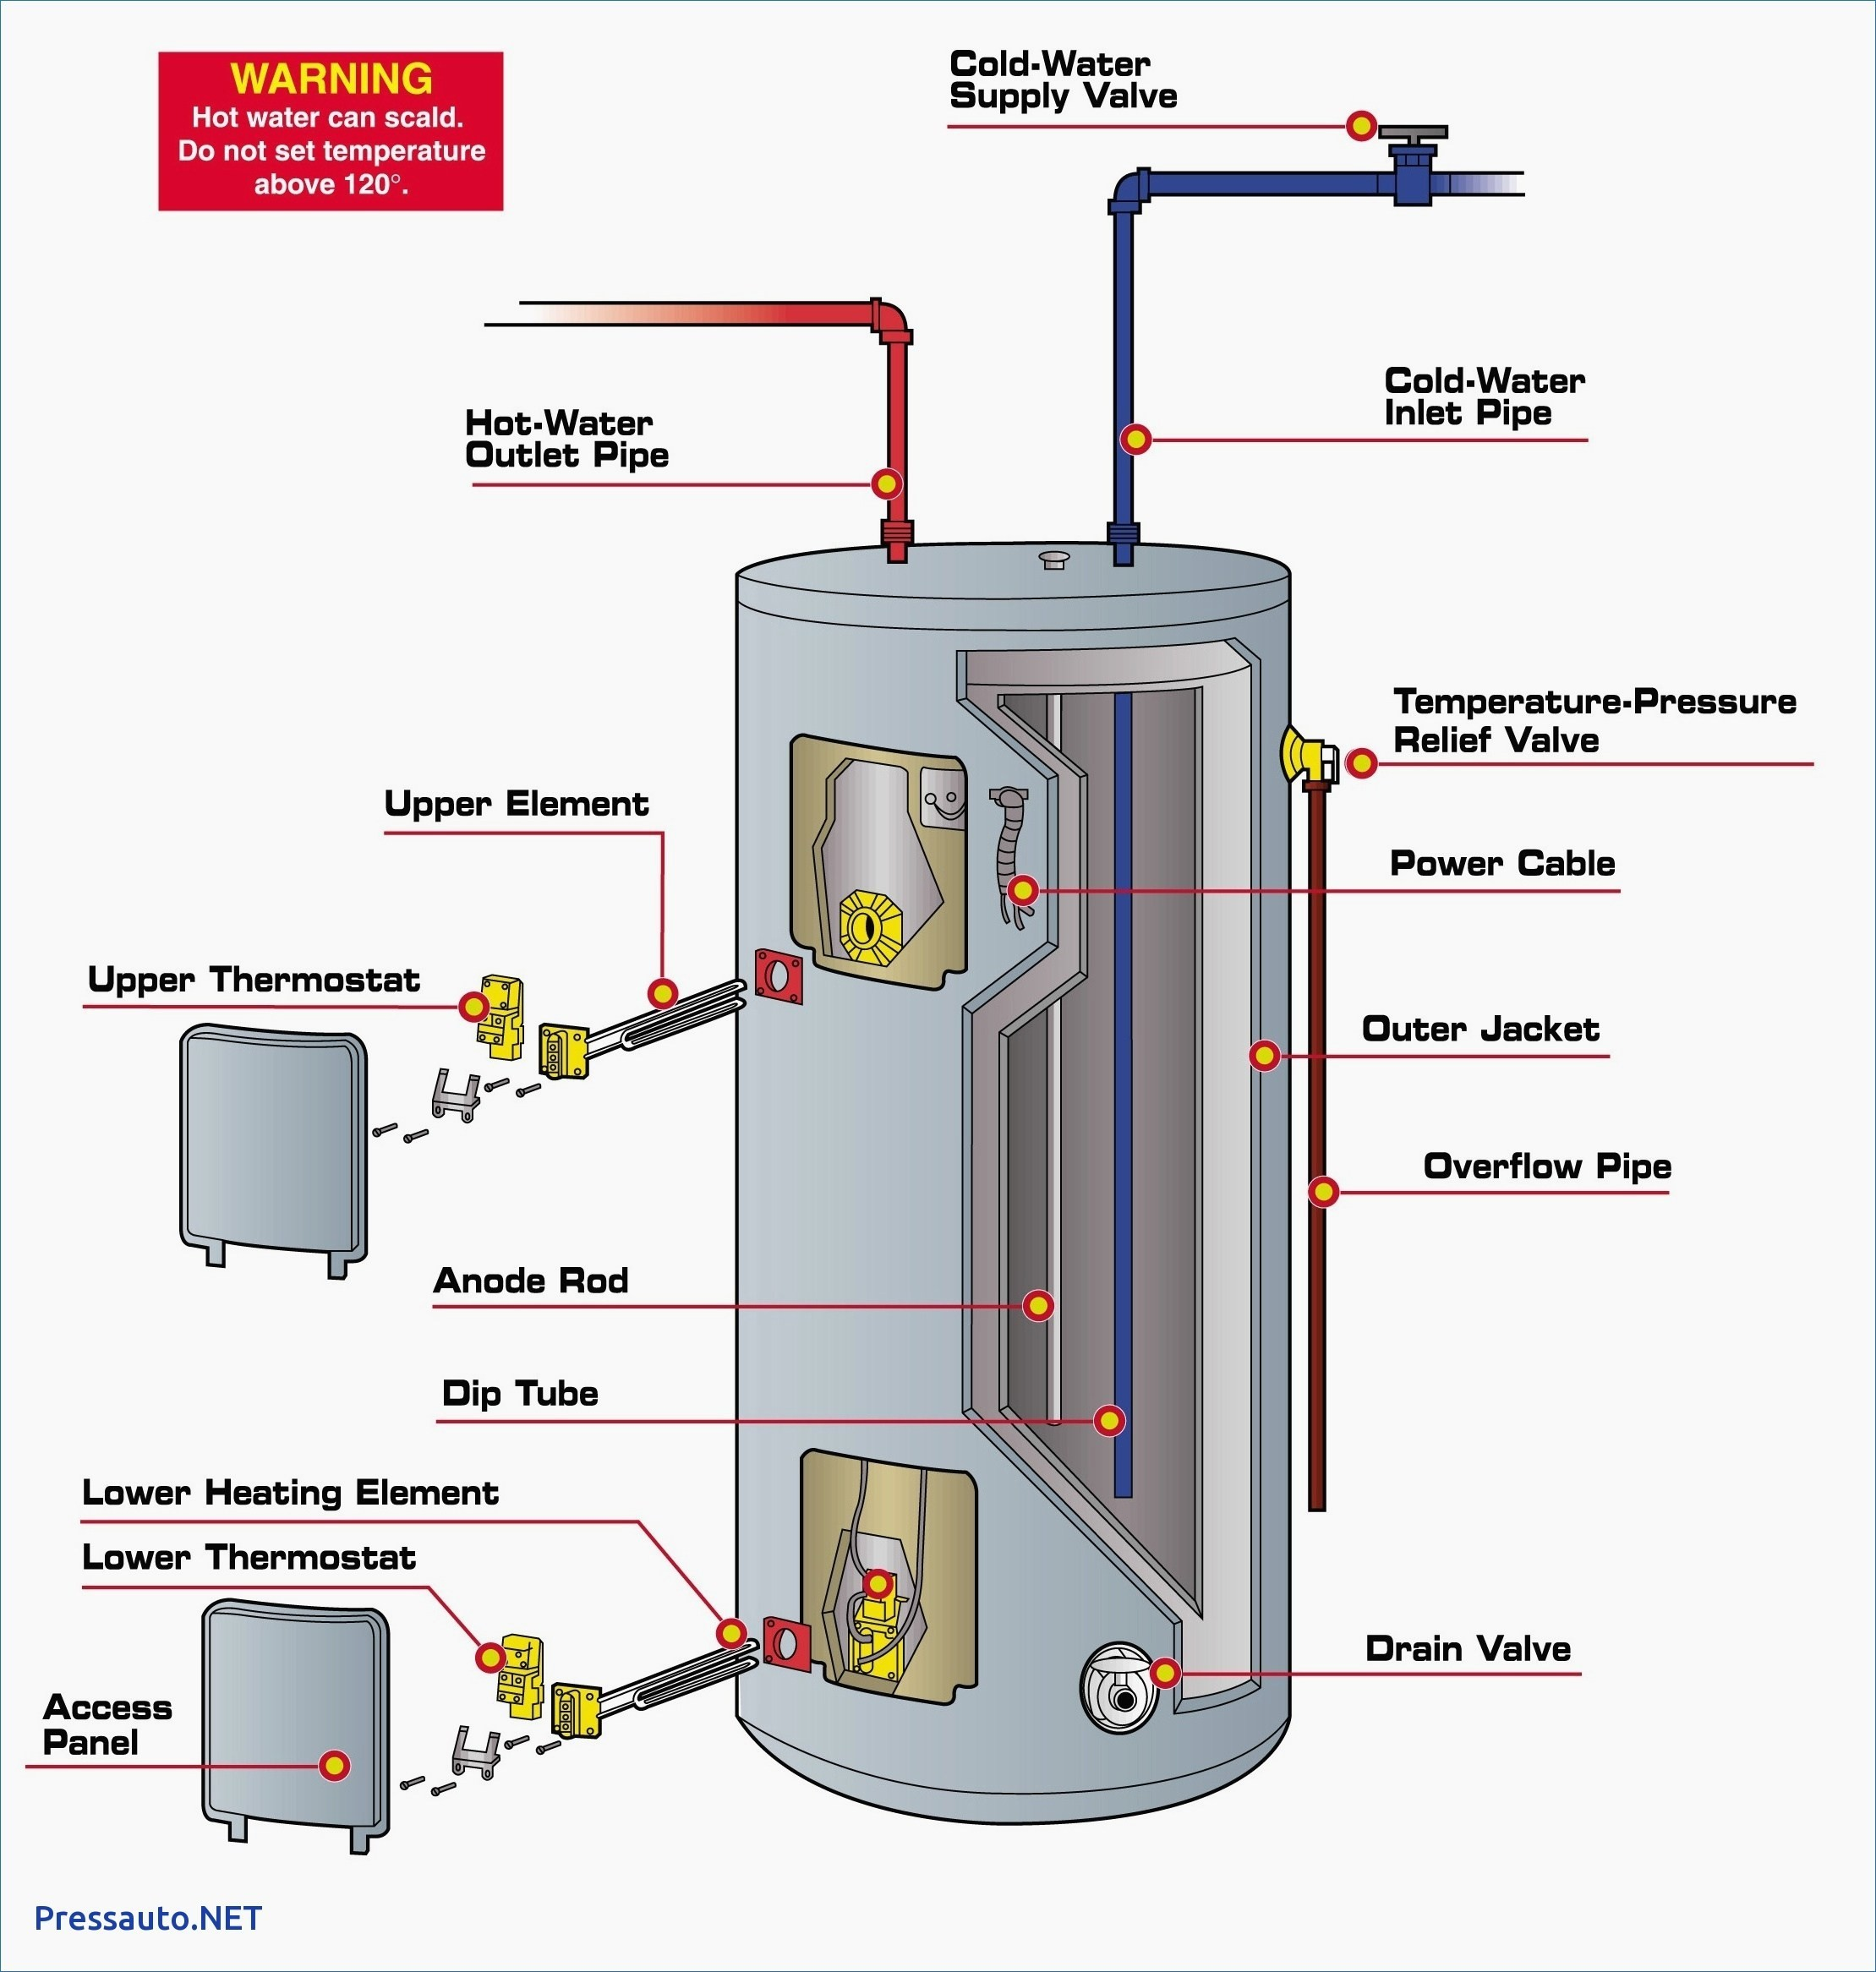 atwood rv furnace parts diagram 2006 impala abs wiring water heater suburban